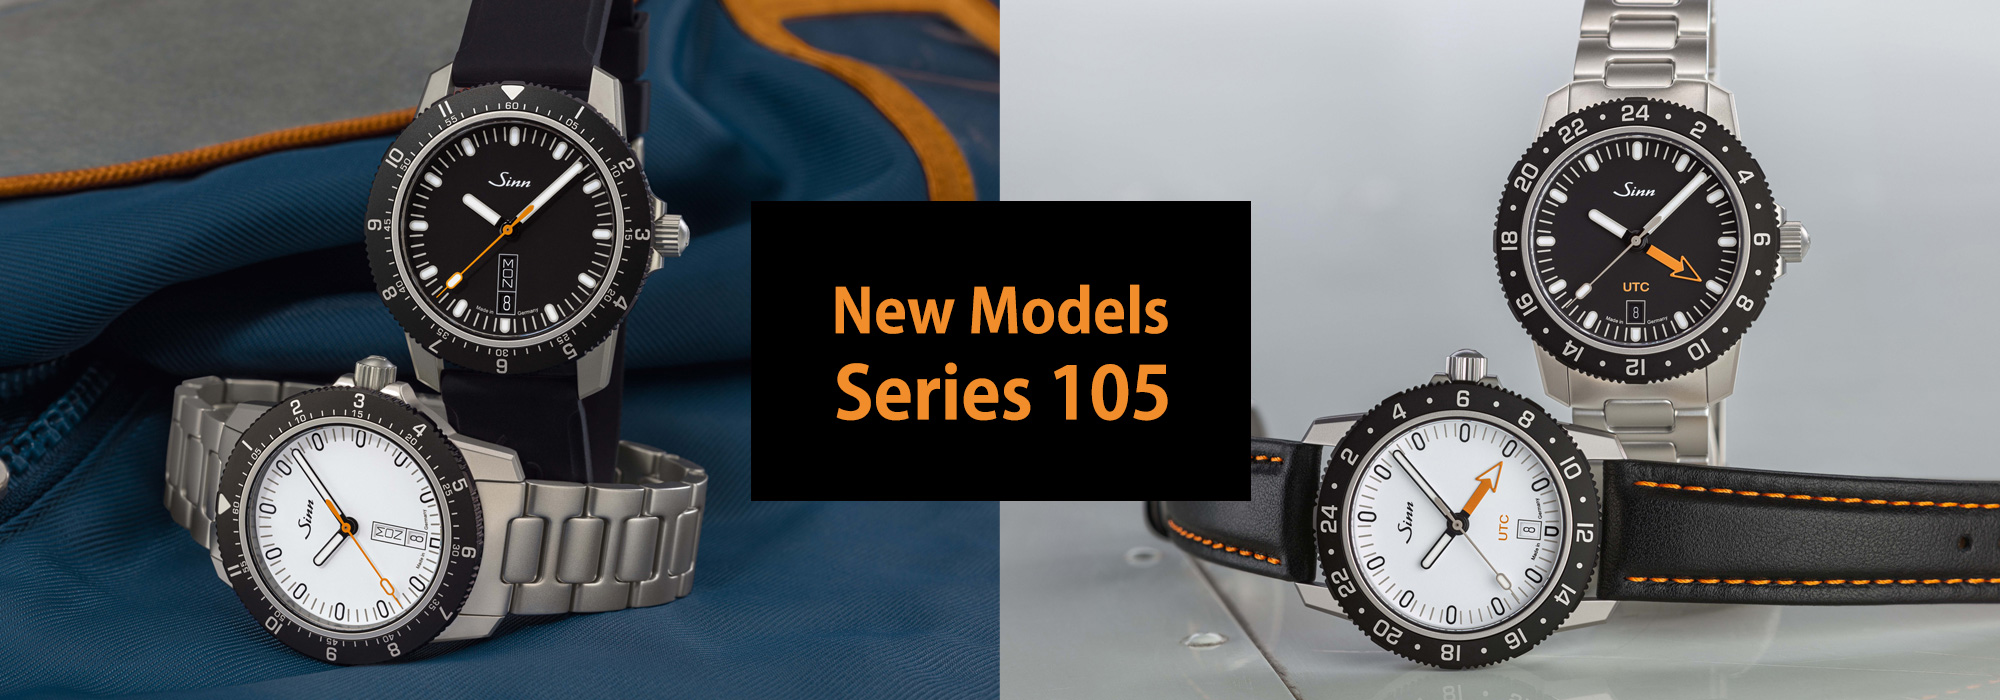 New Models Series 105